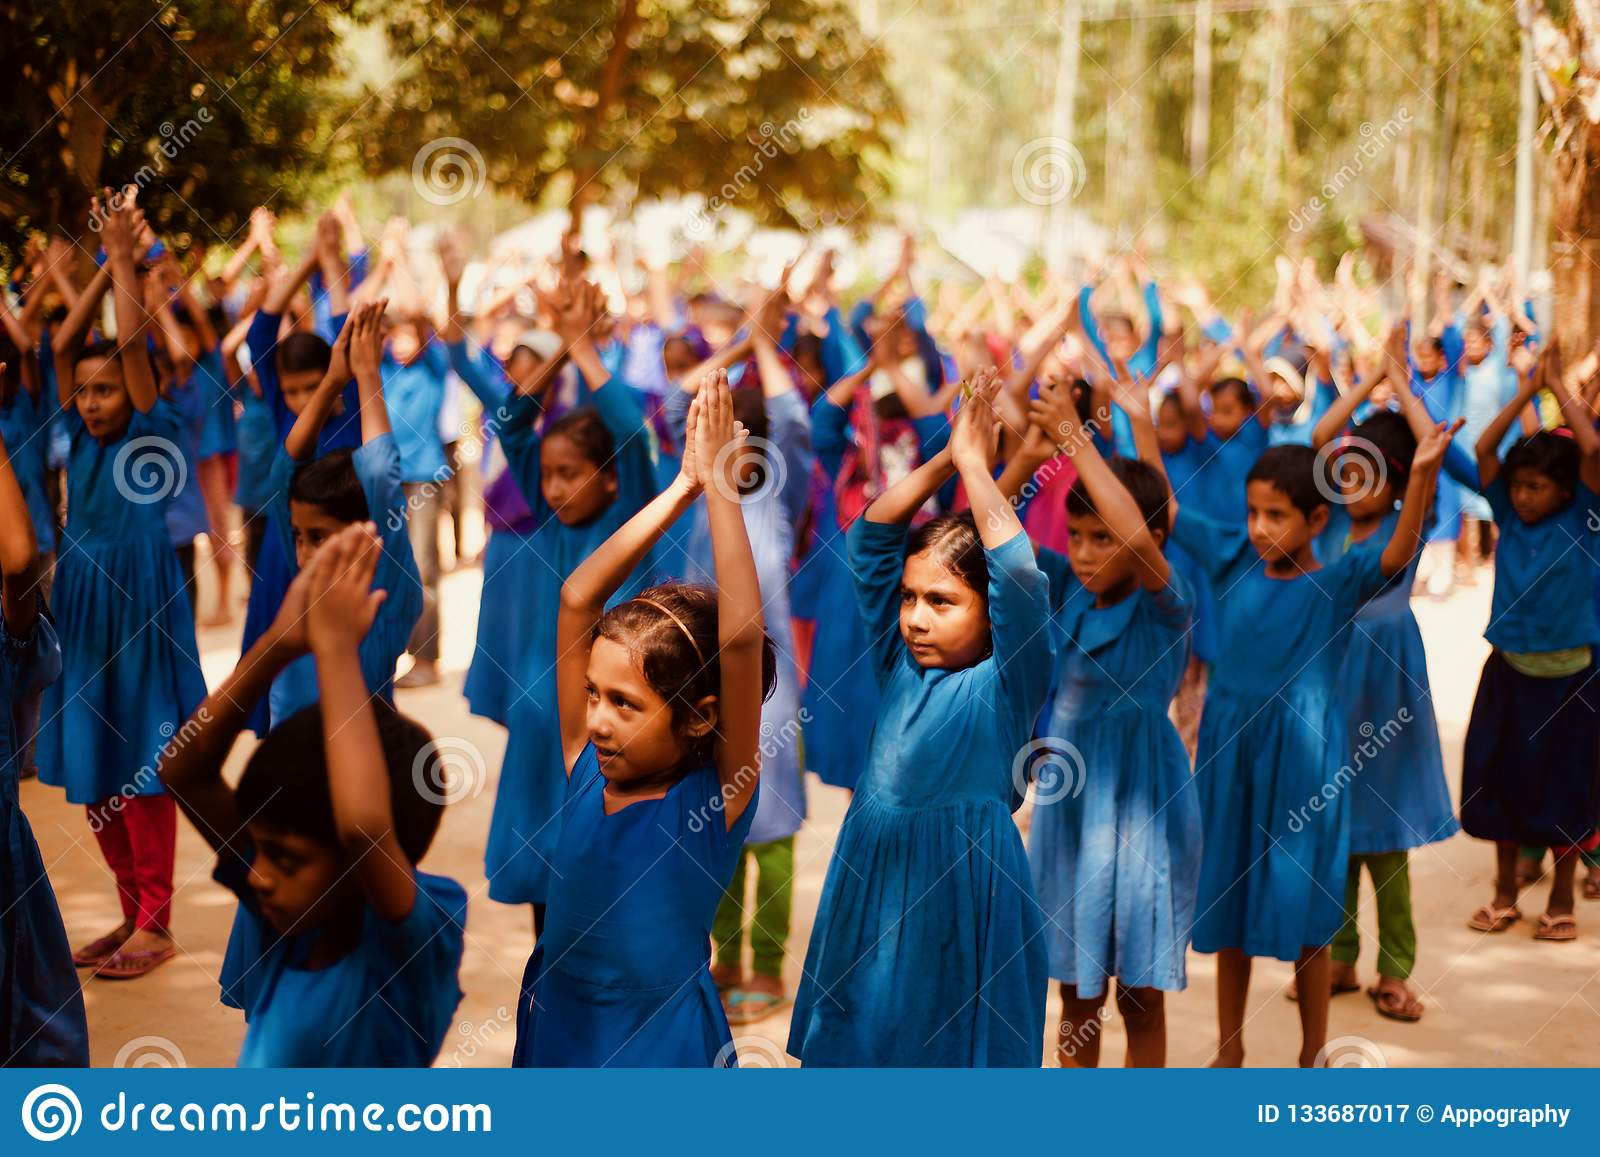 Students raising their hands in an school assembly